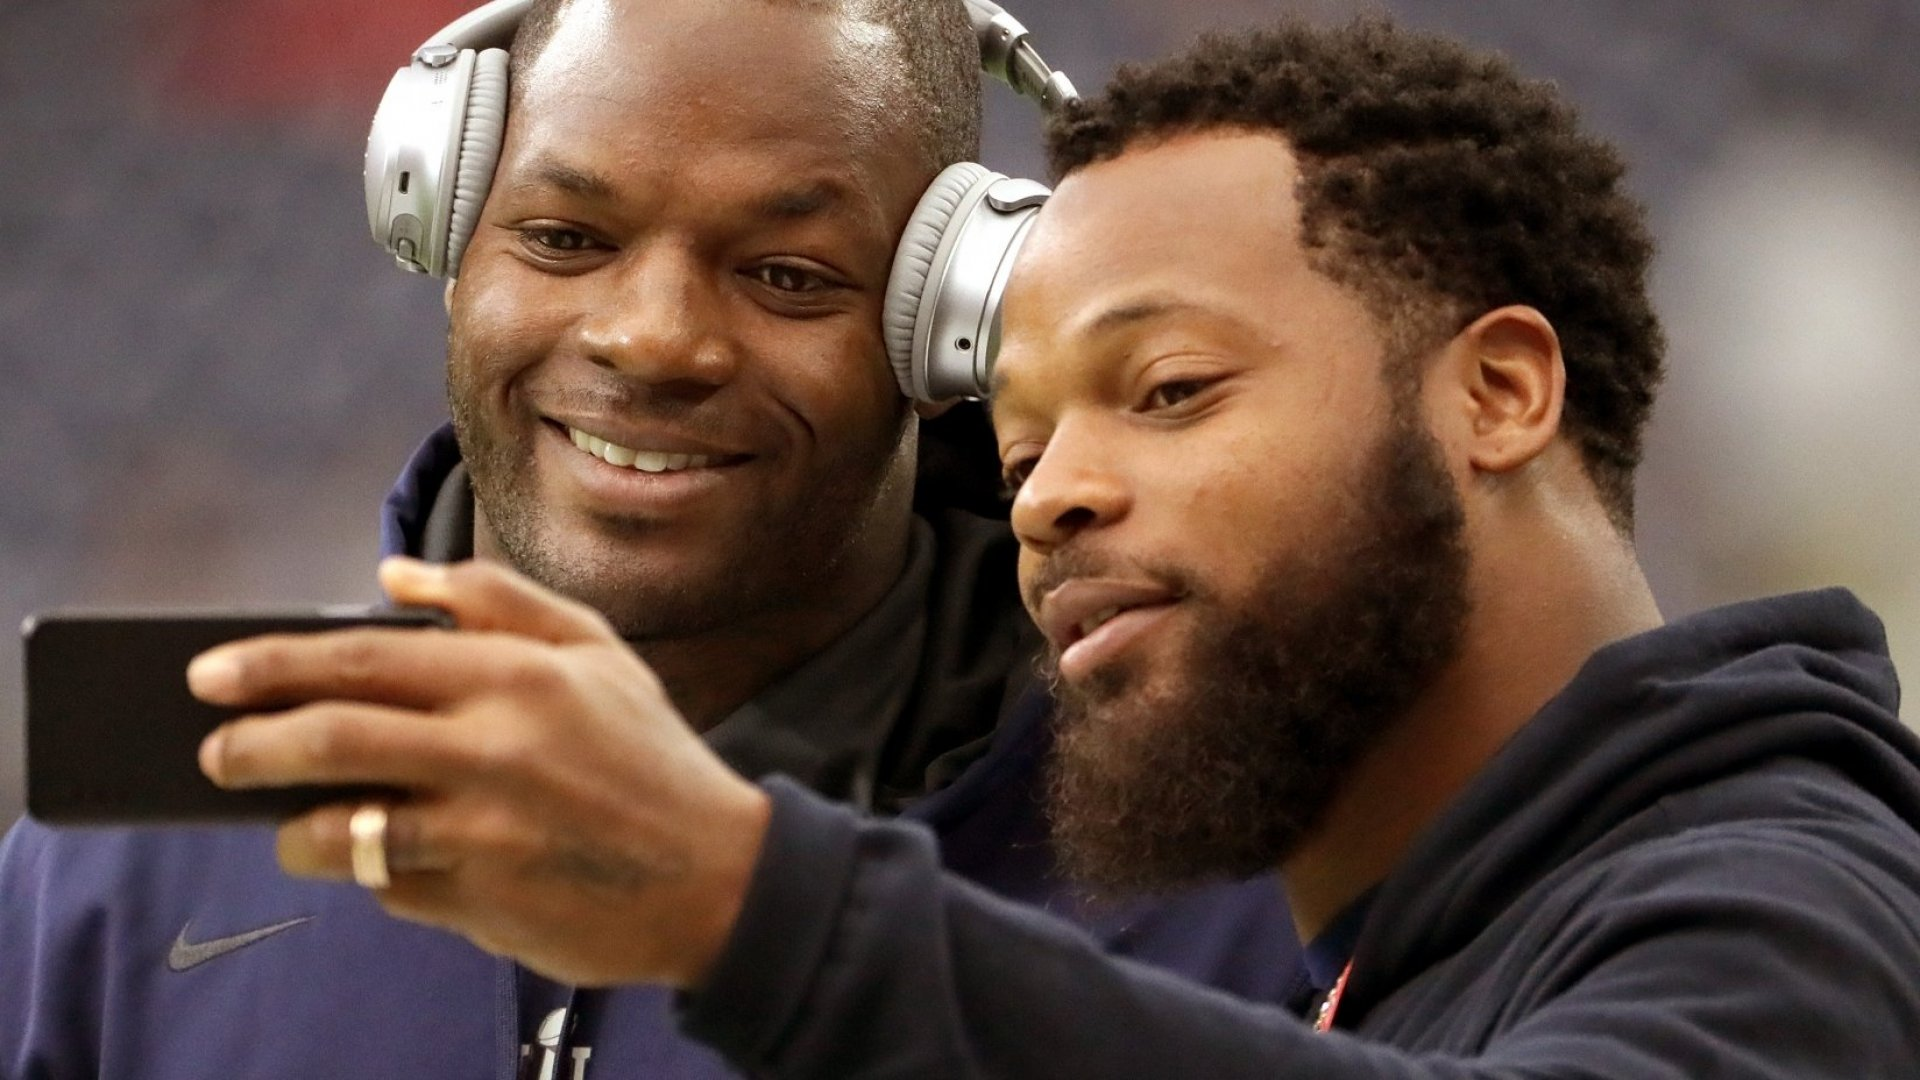 Martellus Bennett (left) poses for a selfie with brother Michael Bennett.